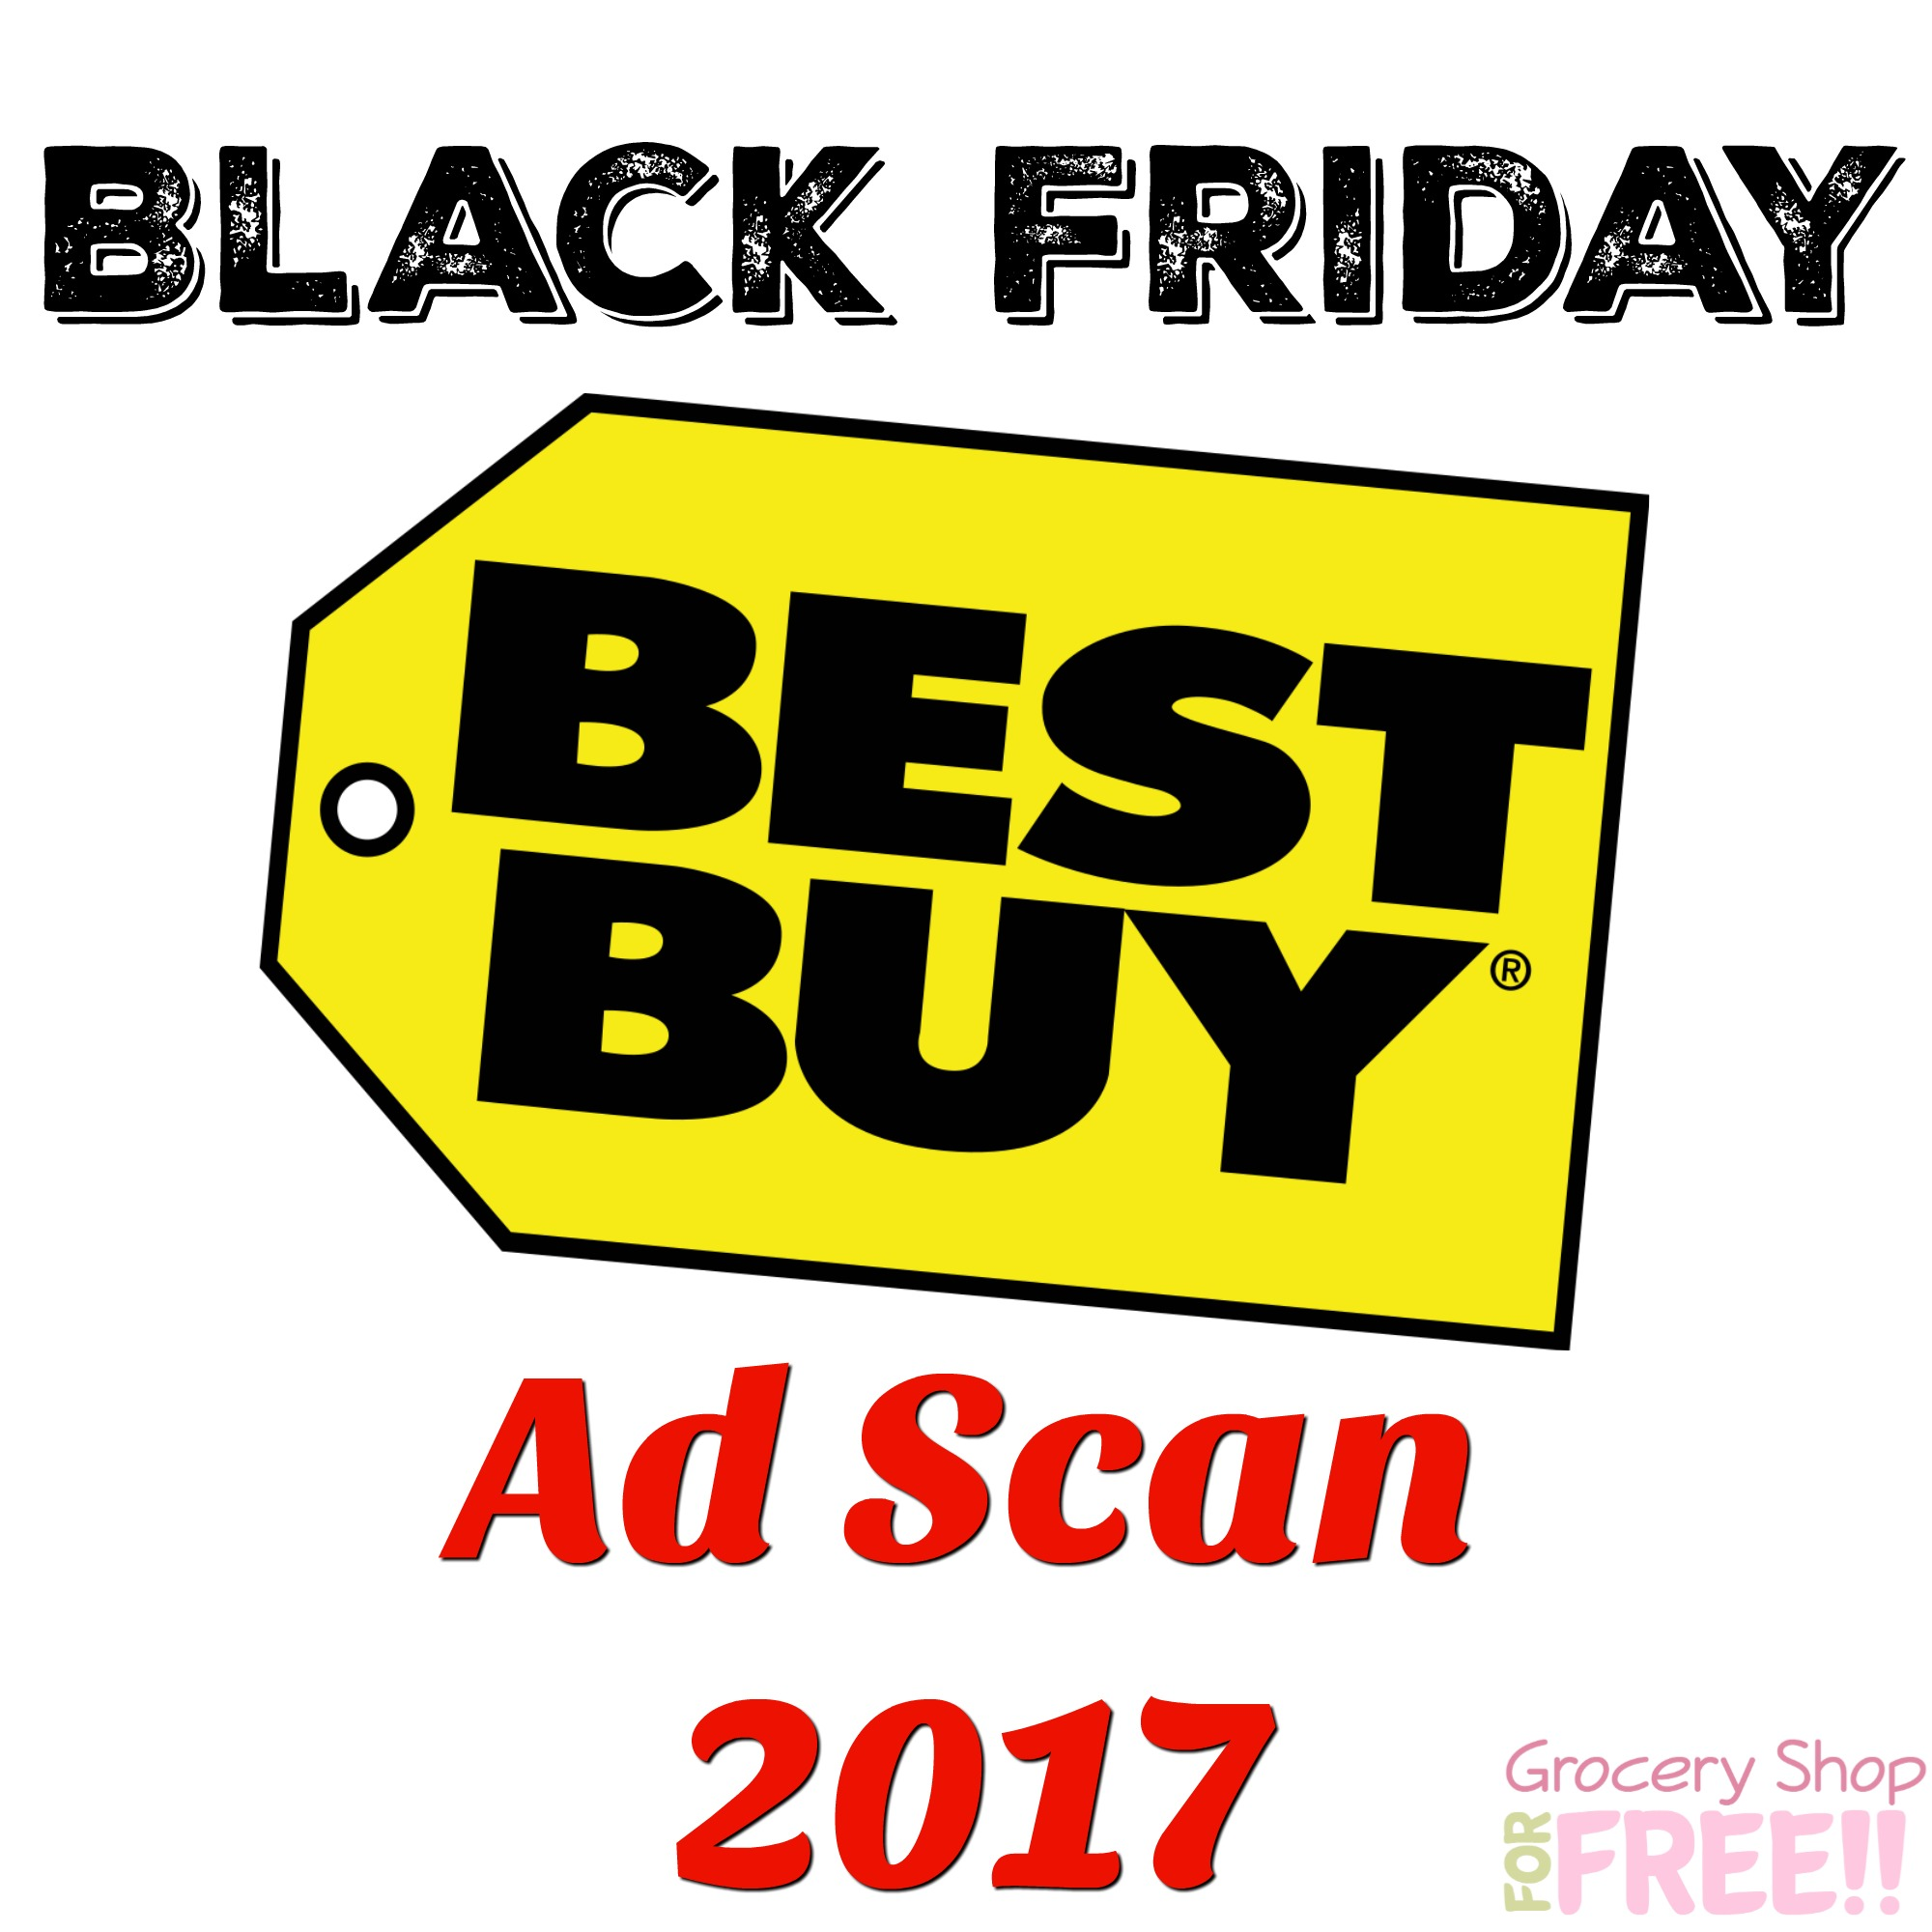 Best Buy Black Friday Ad Scan 2017!